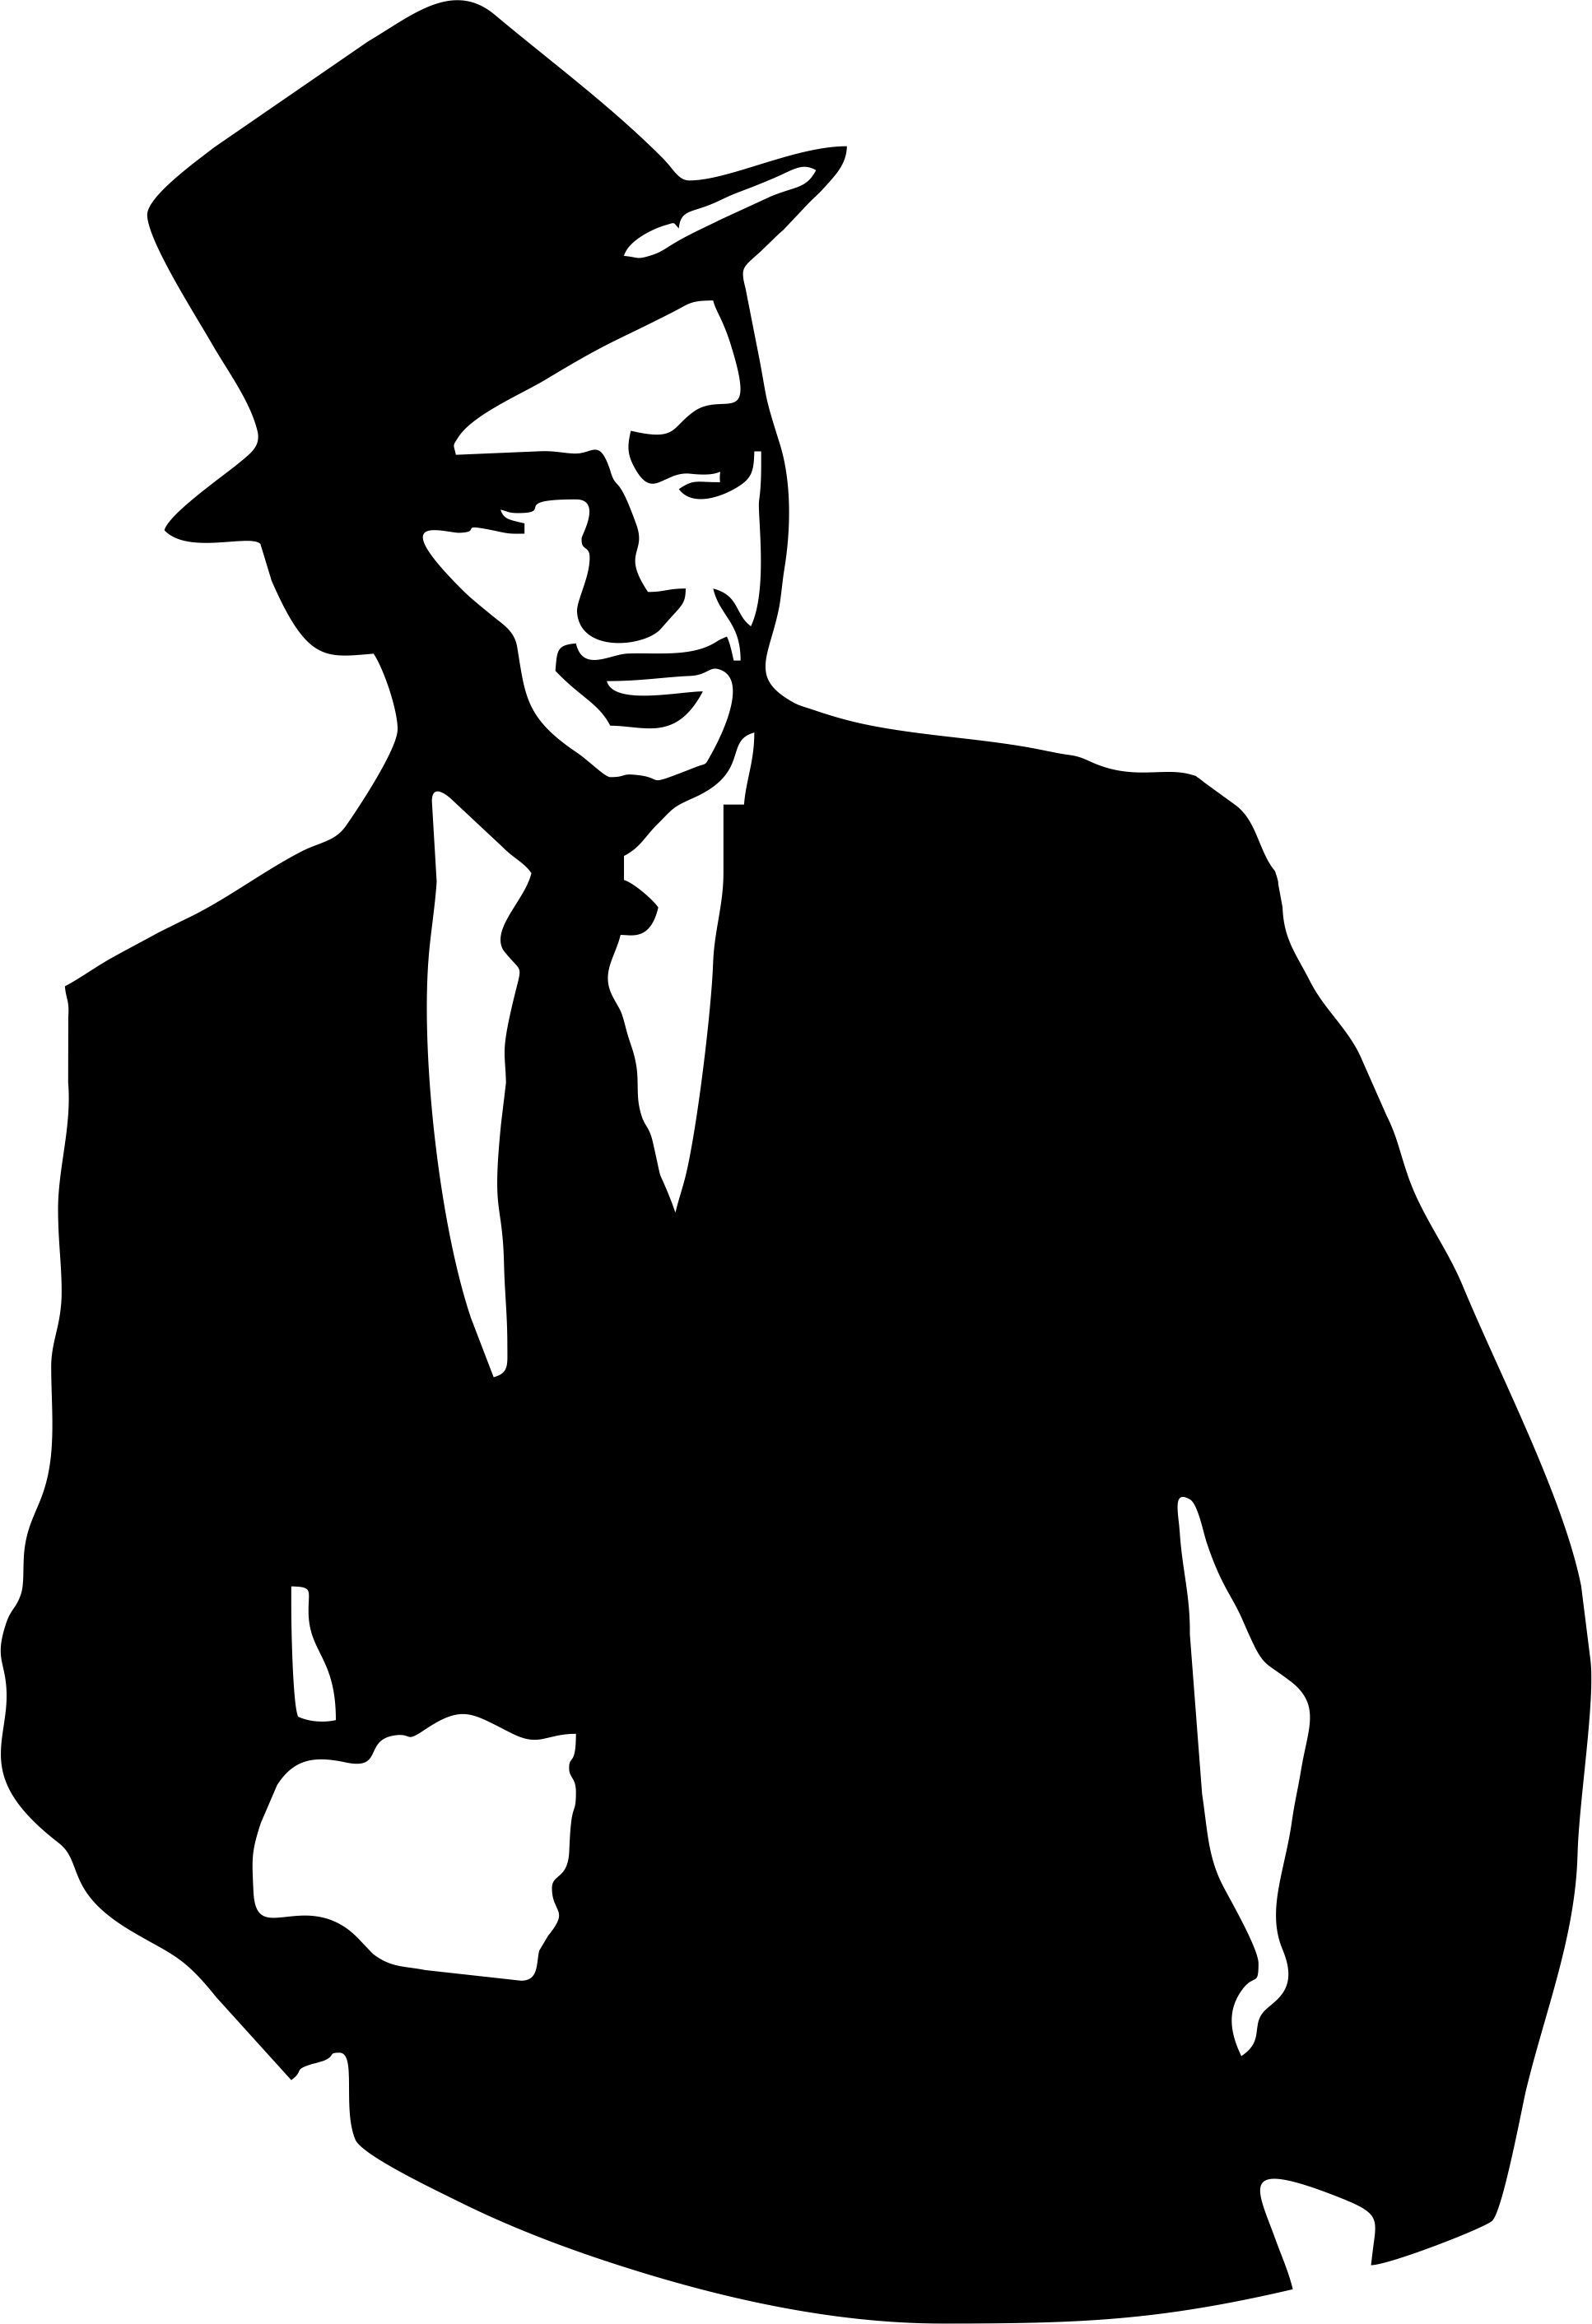 Frank sinatra clipart jpg black and white Collection of Sinatra clipart | Free download best Sinatra clipart ... jpg black and white